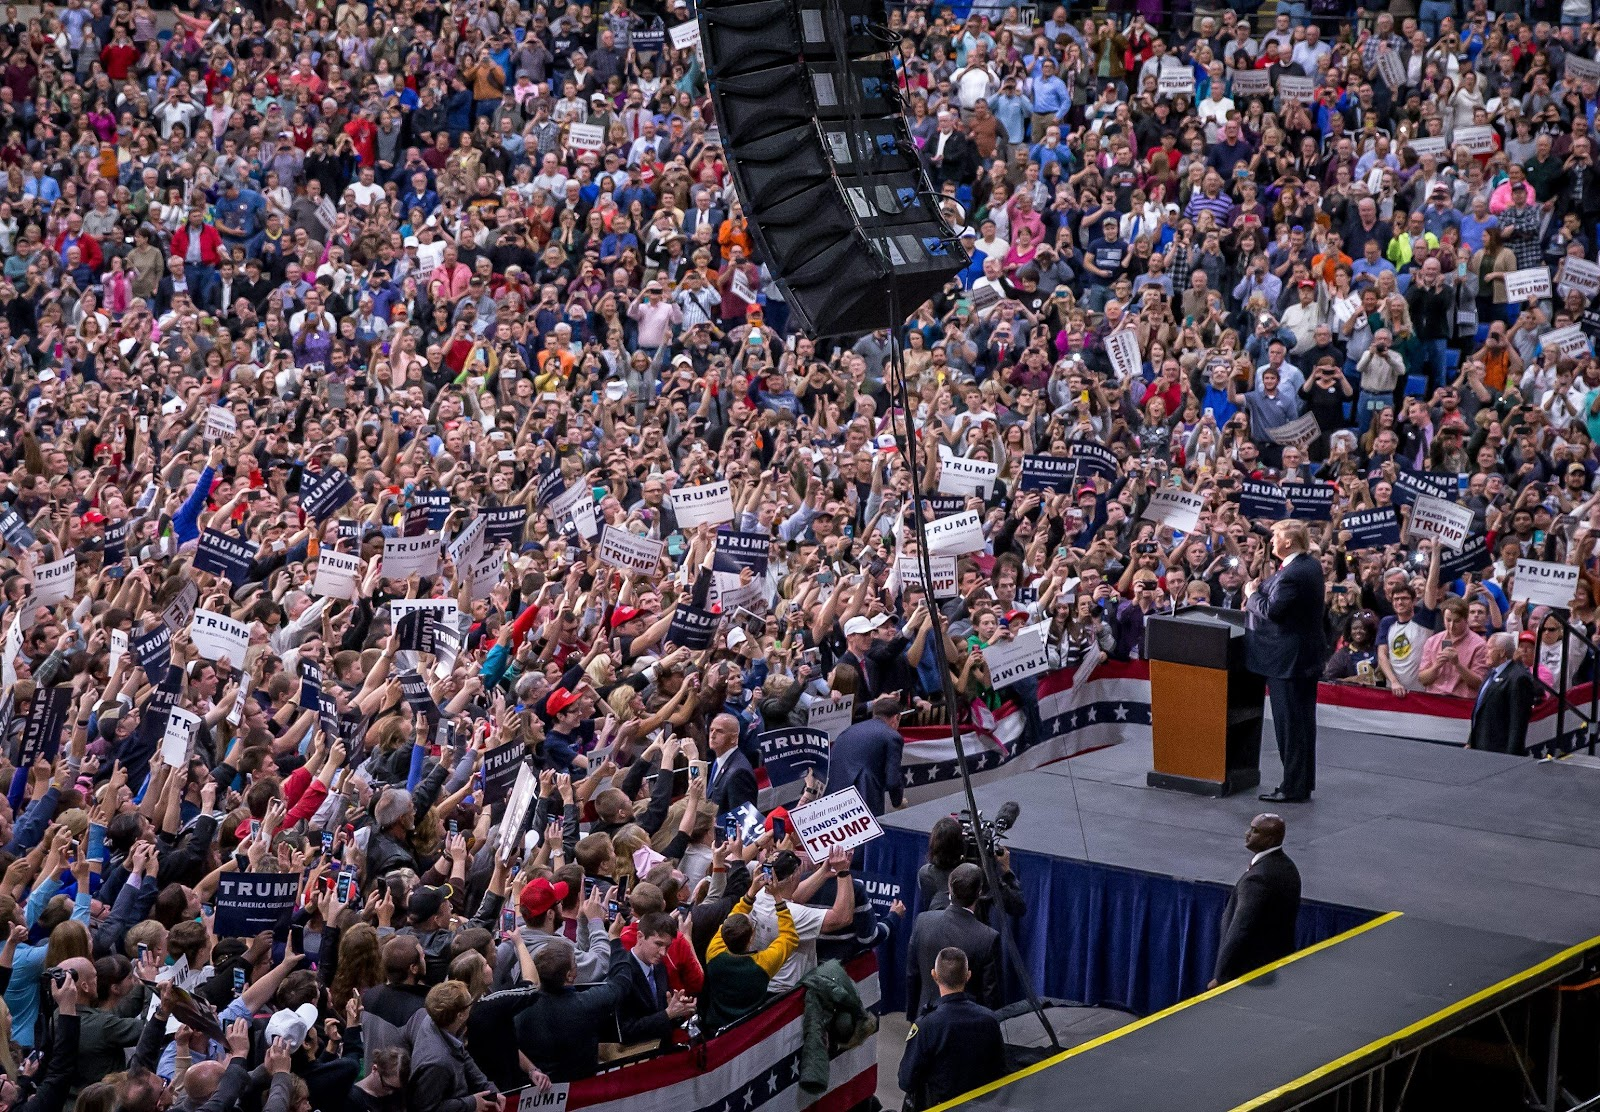 Billedresultat for crowds at trump rallies